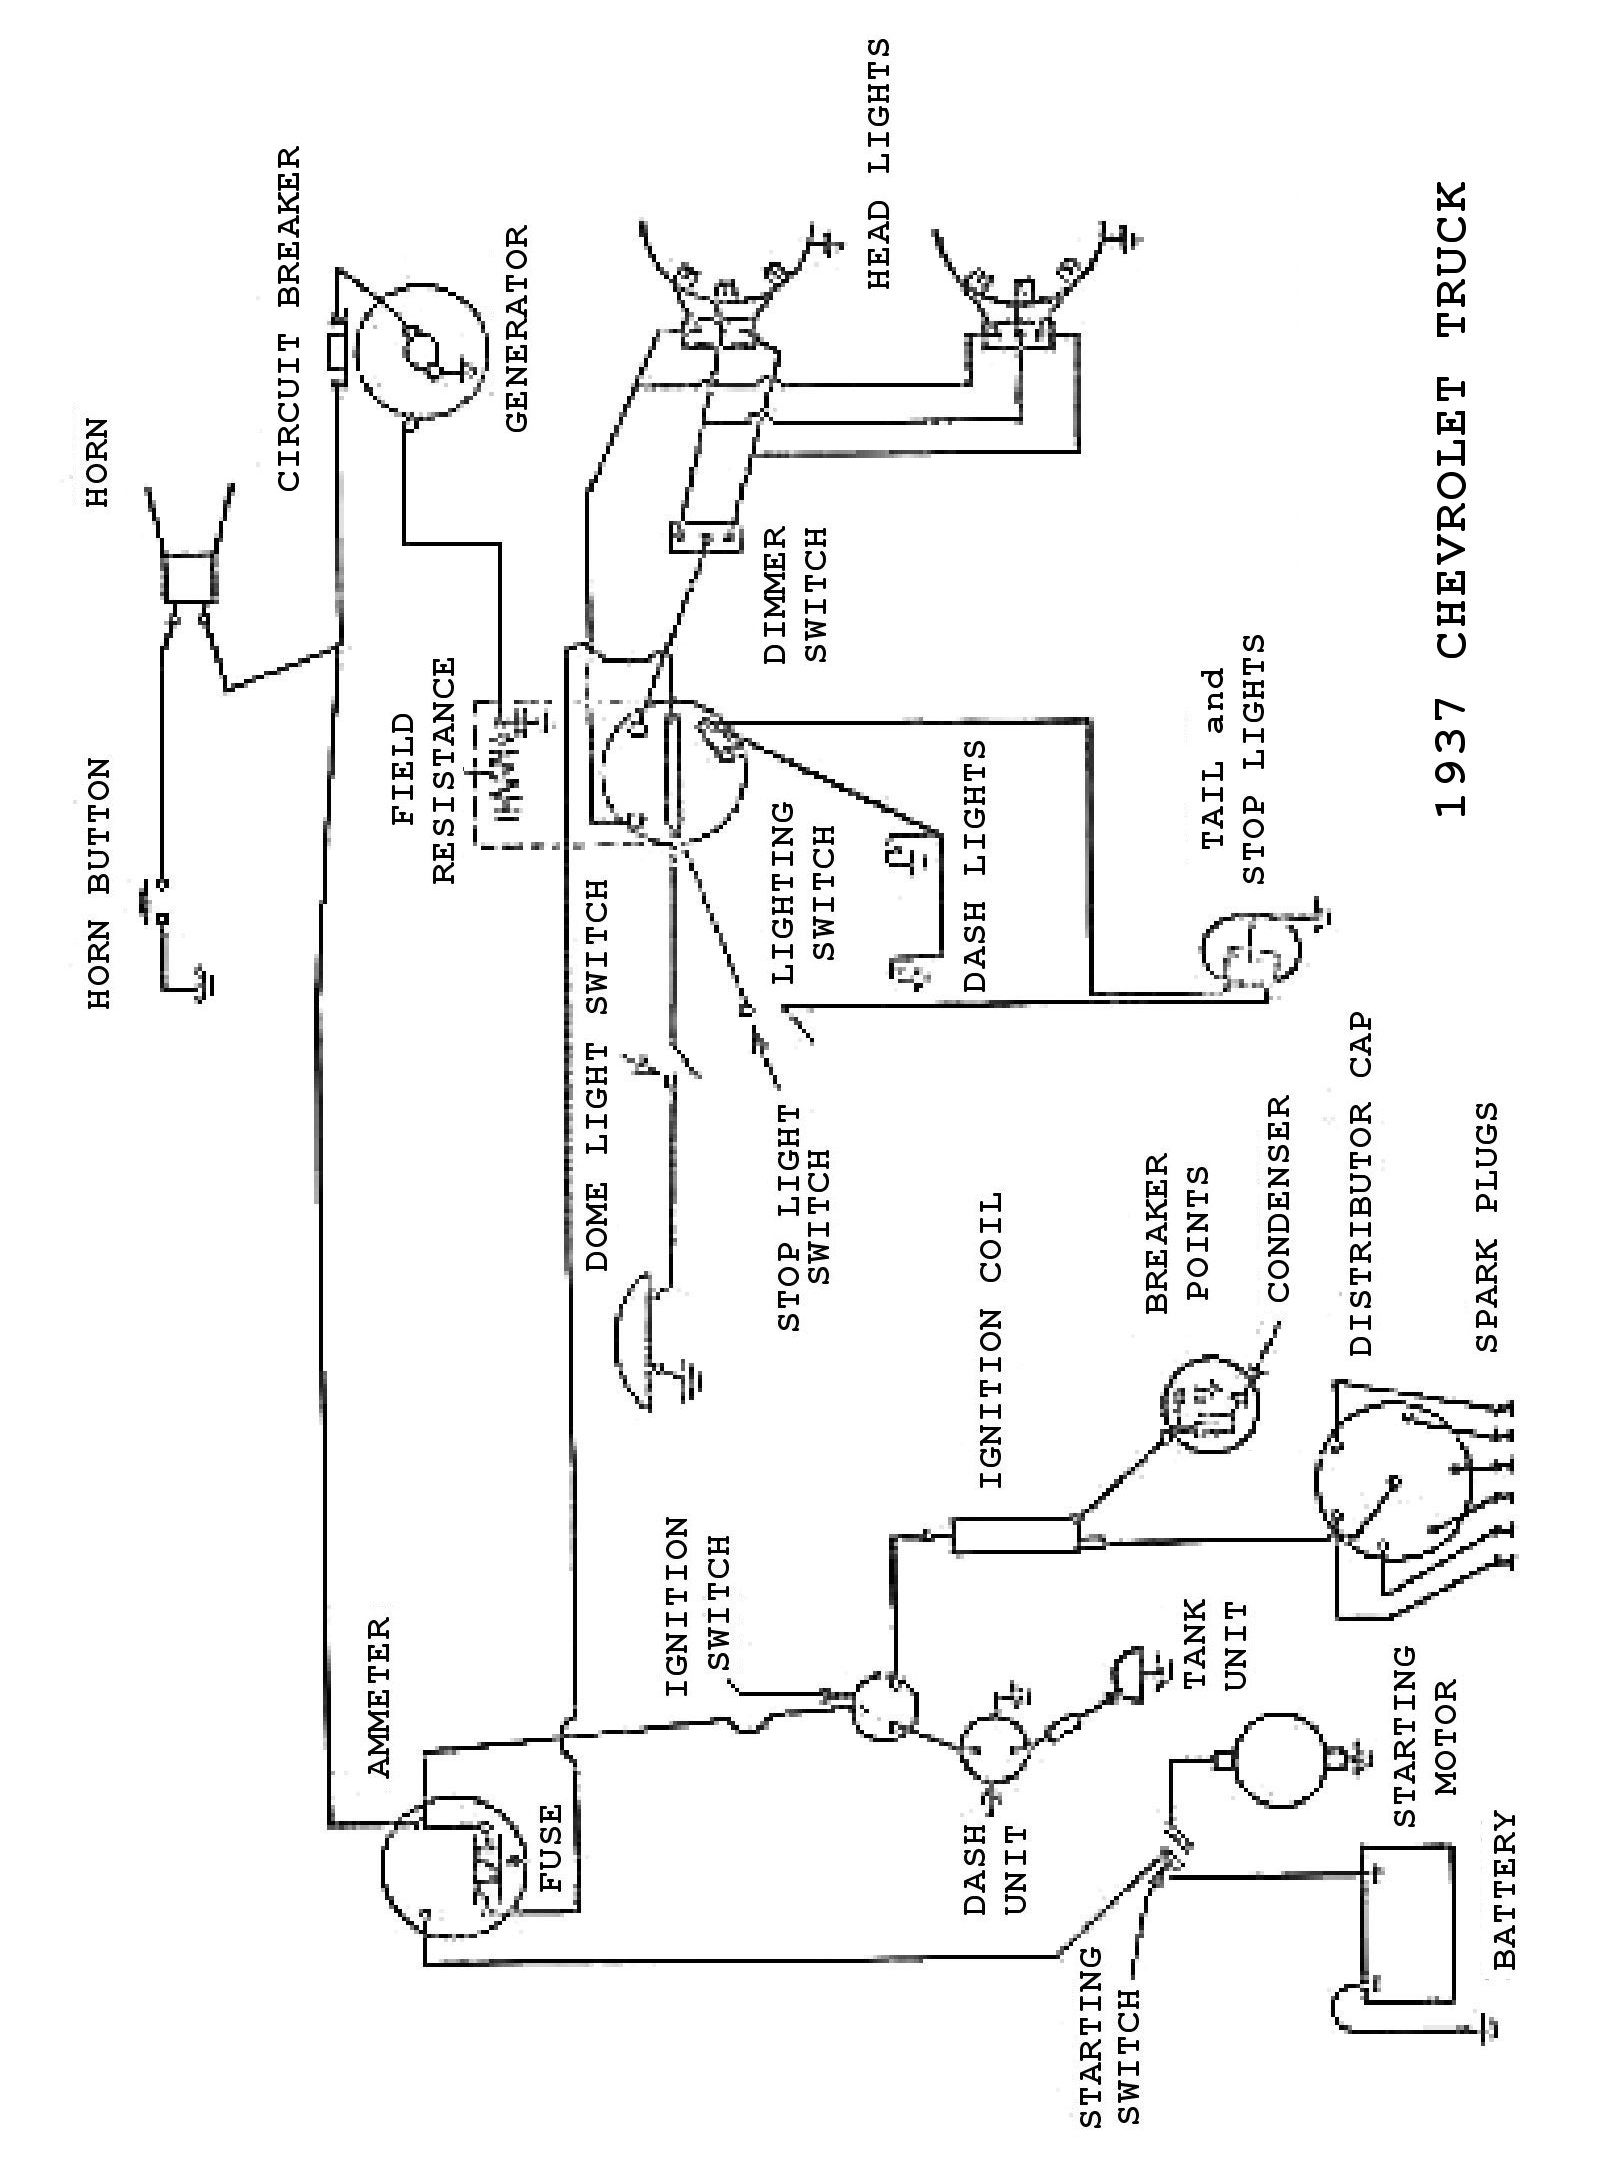 37truck chevy truck wiring diagram 87 chevy truck wiring diagram \u2022 wiring 1965 chevy truck turn signal wiring diagram at gsmportal.co